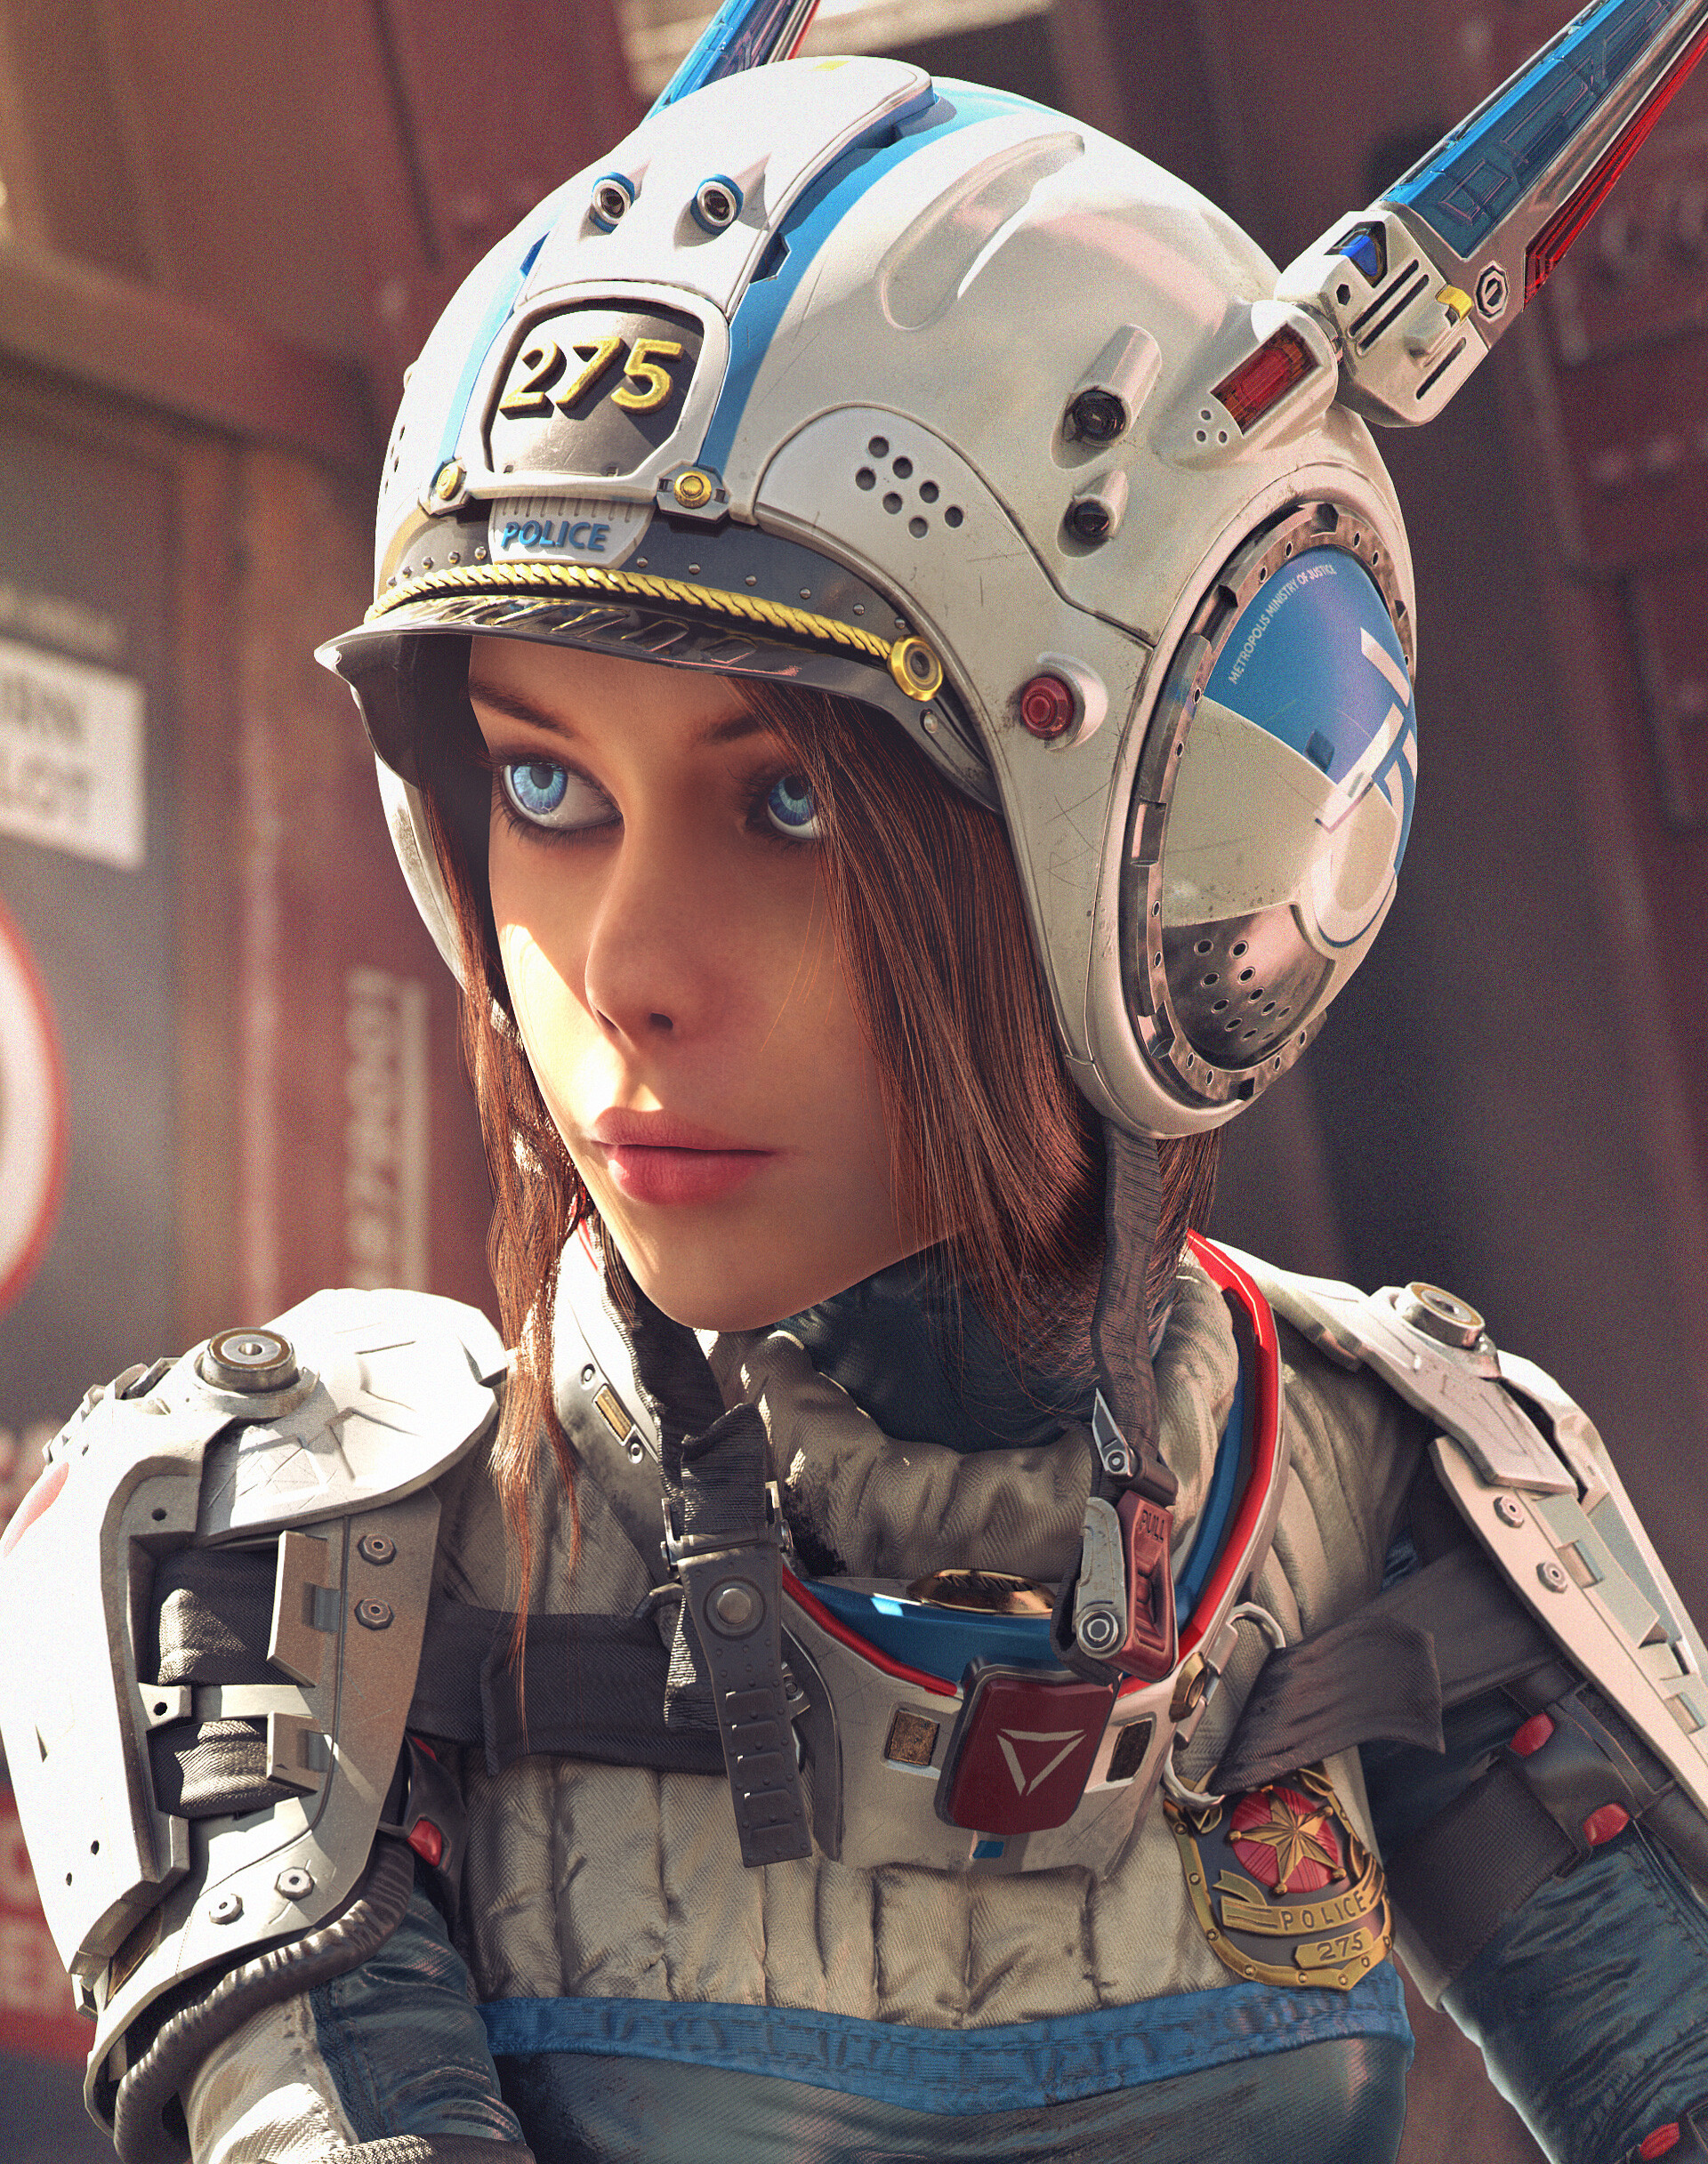 Amazing 3d Sci-Fi Artwork by Michael Black